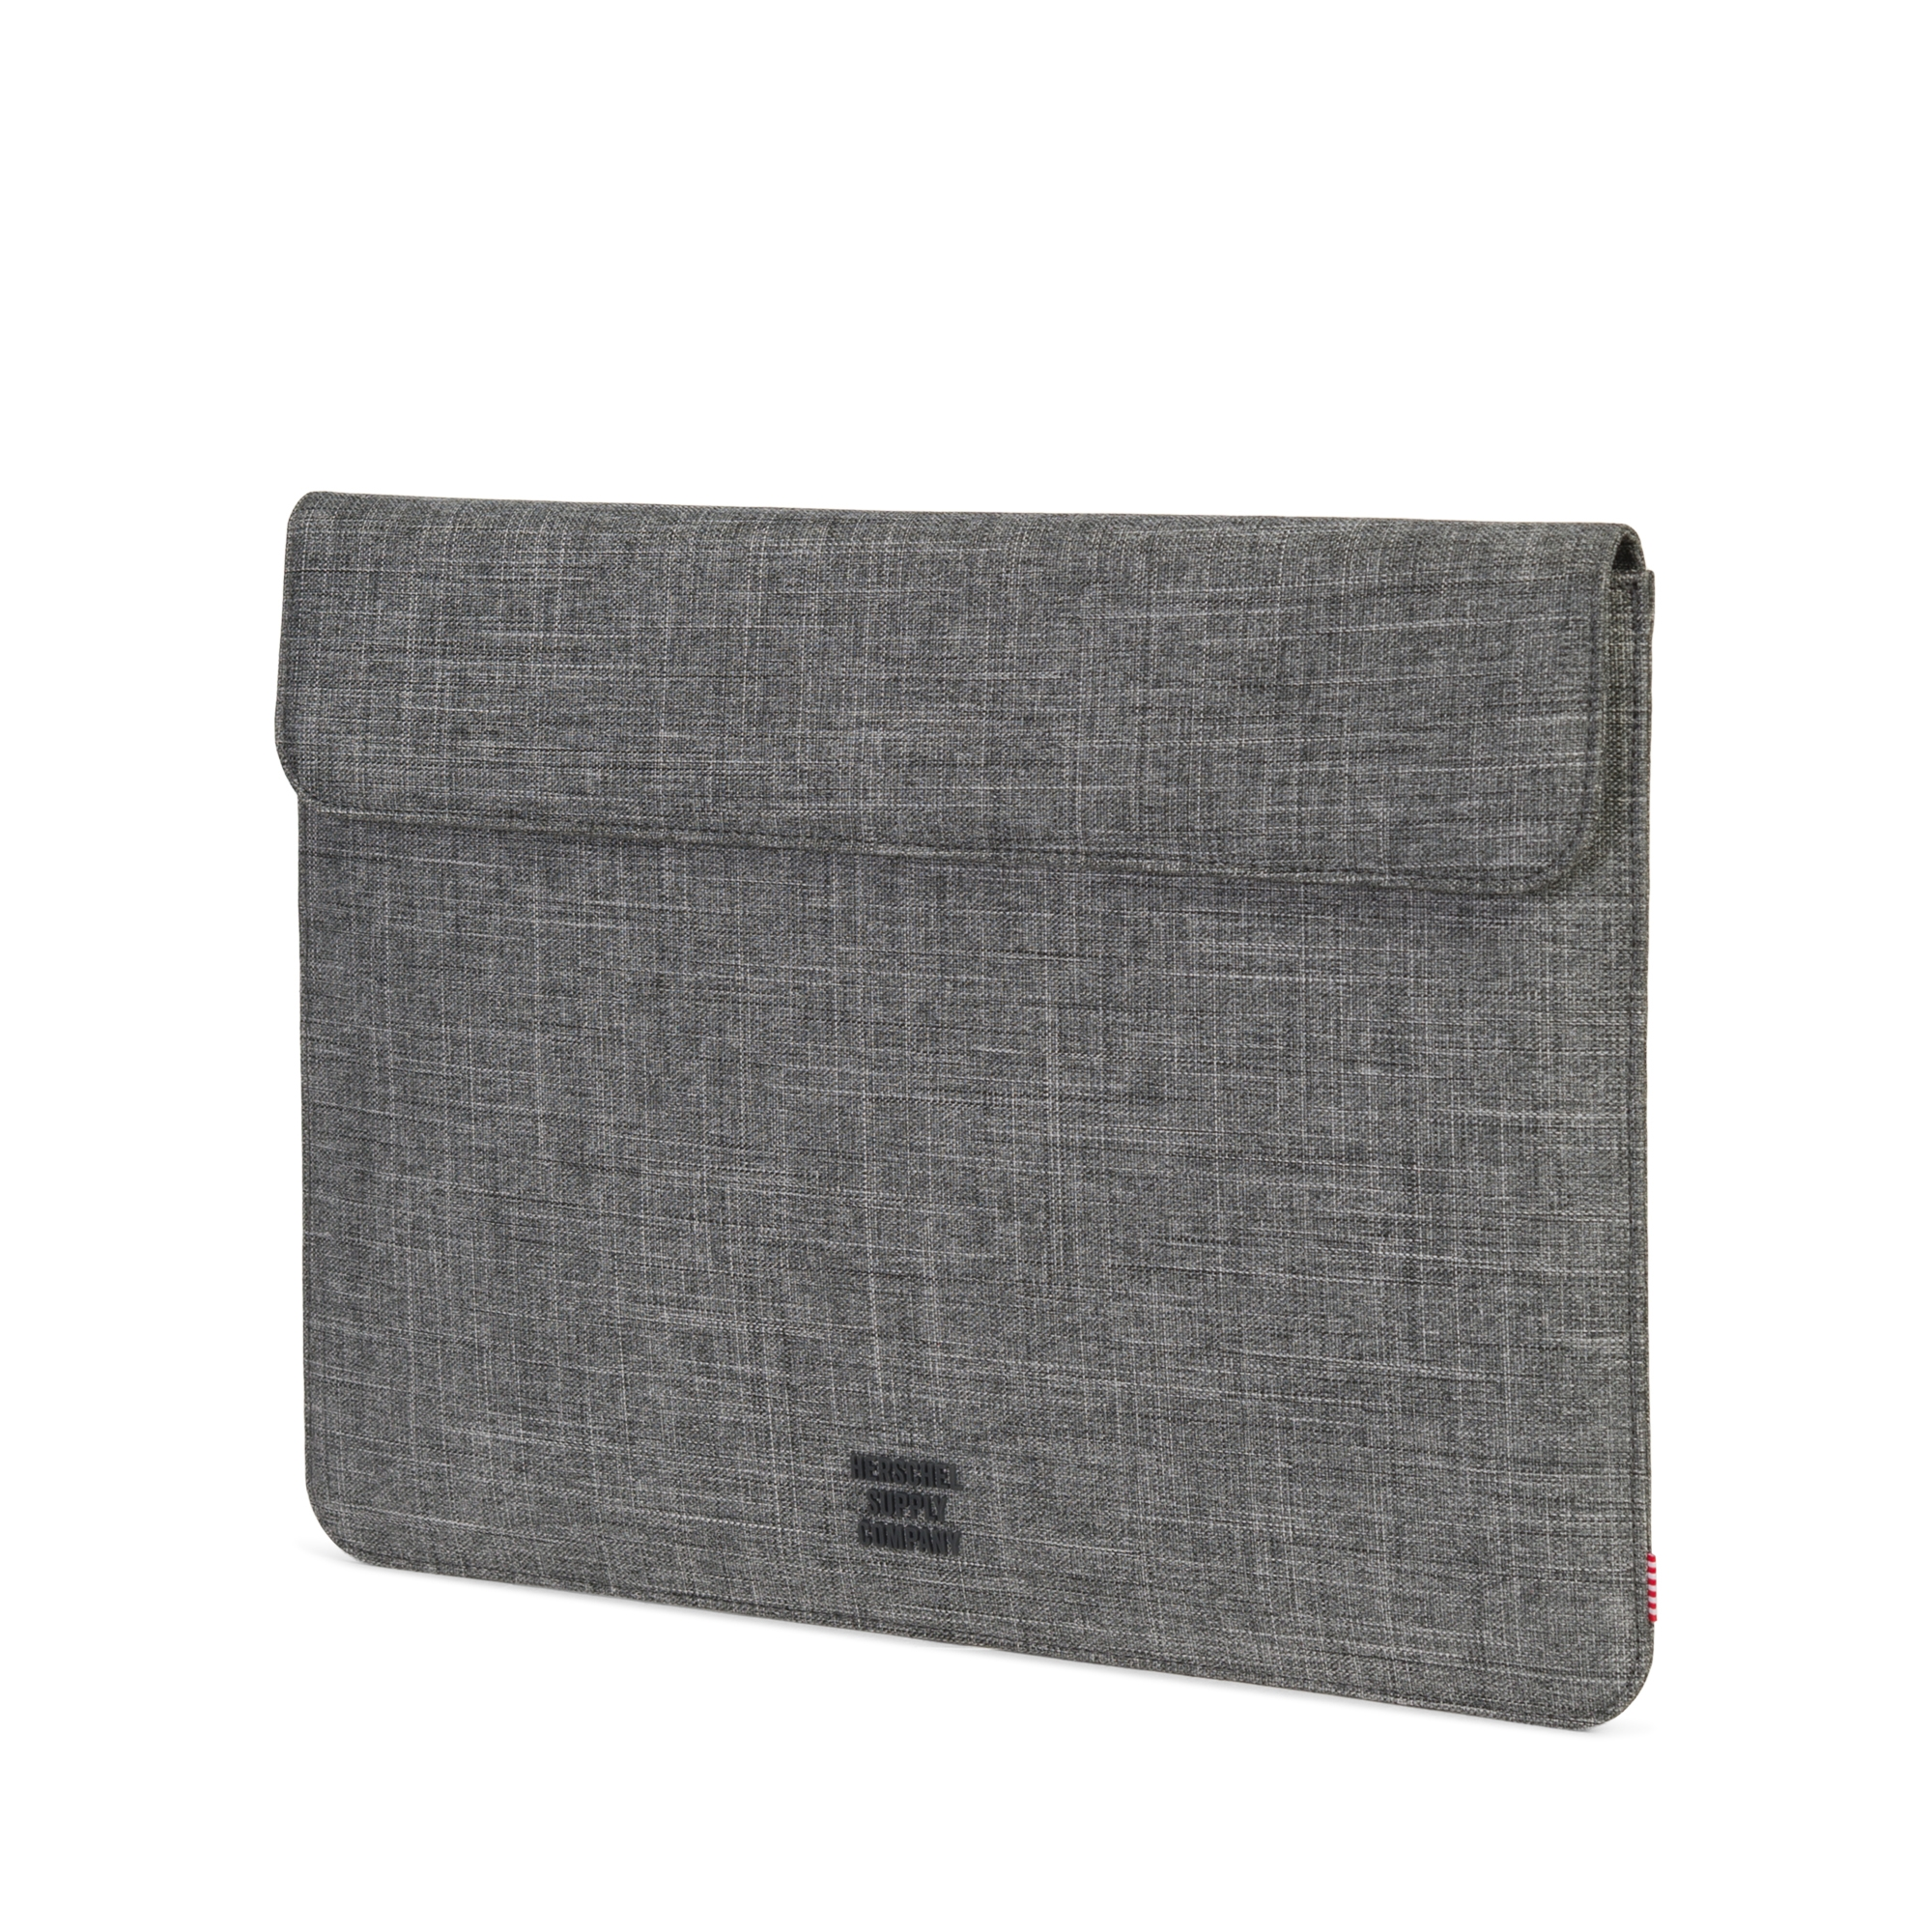 "Herschel Spokane Sleeve for 15"" Macbook Raven Crosshatch-156211"